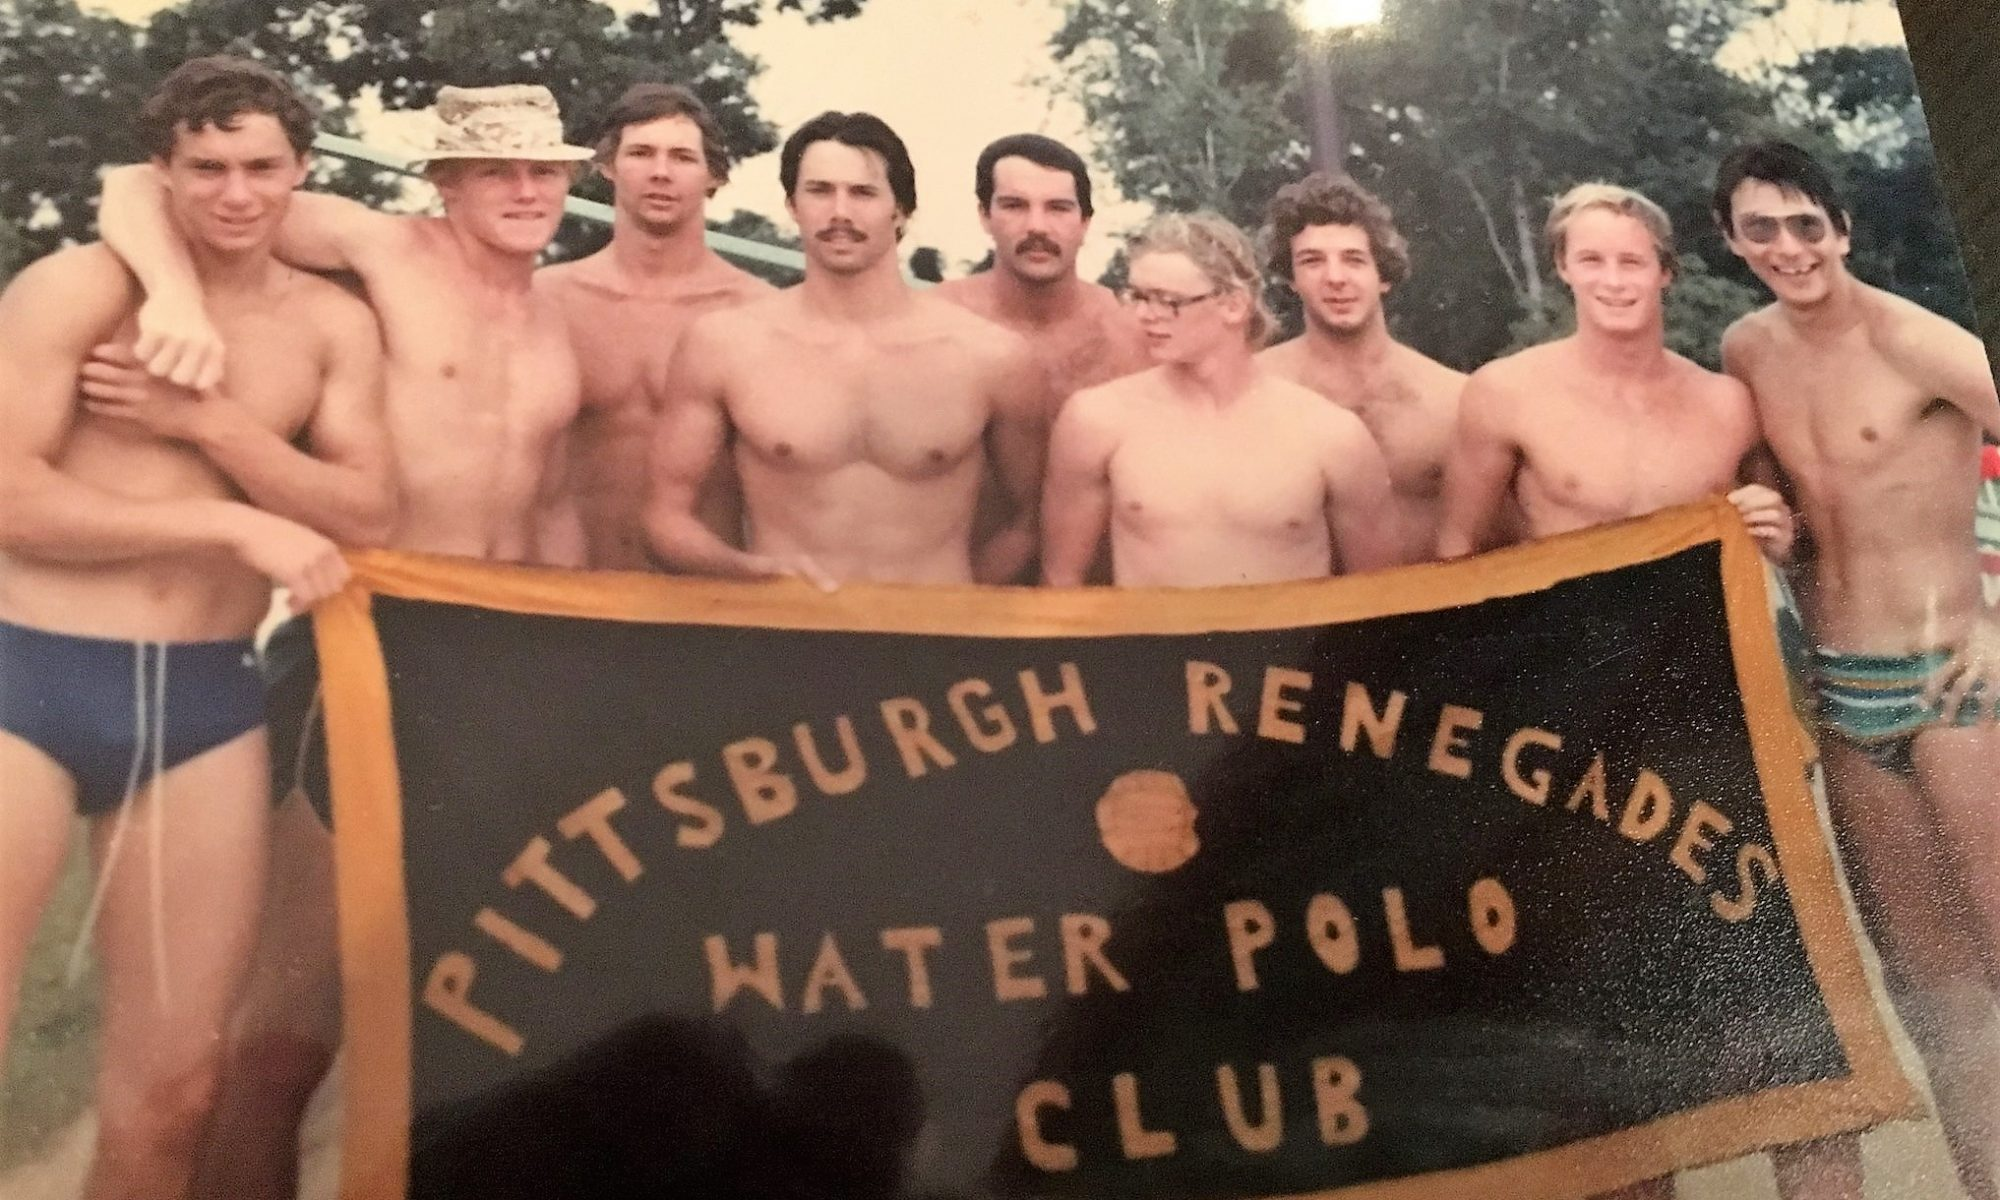 Pittsburgh Renegades Water Polo Club